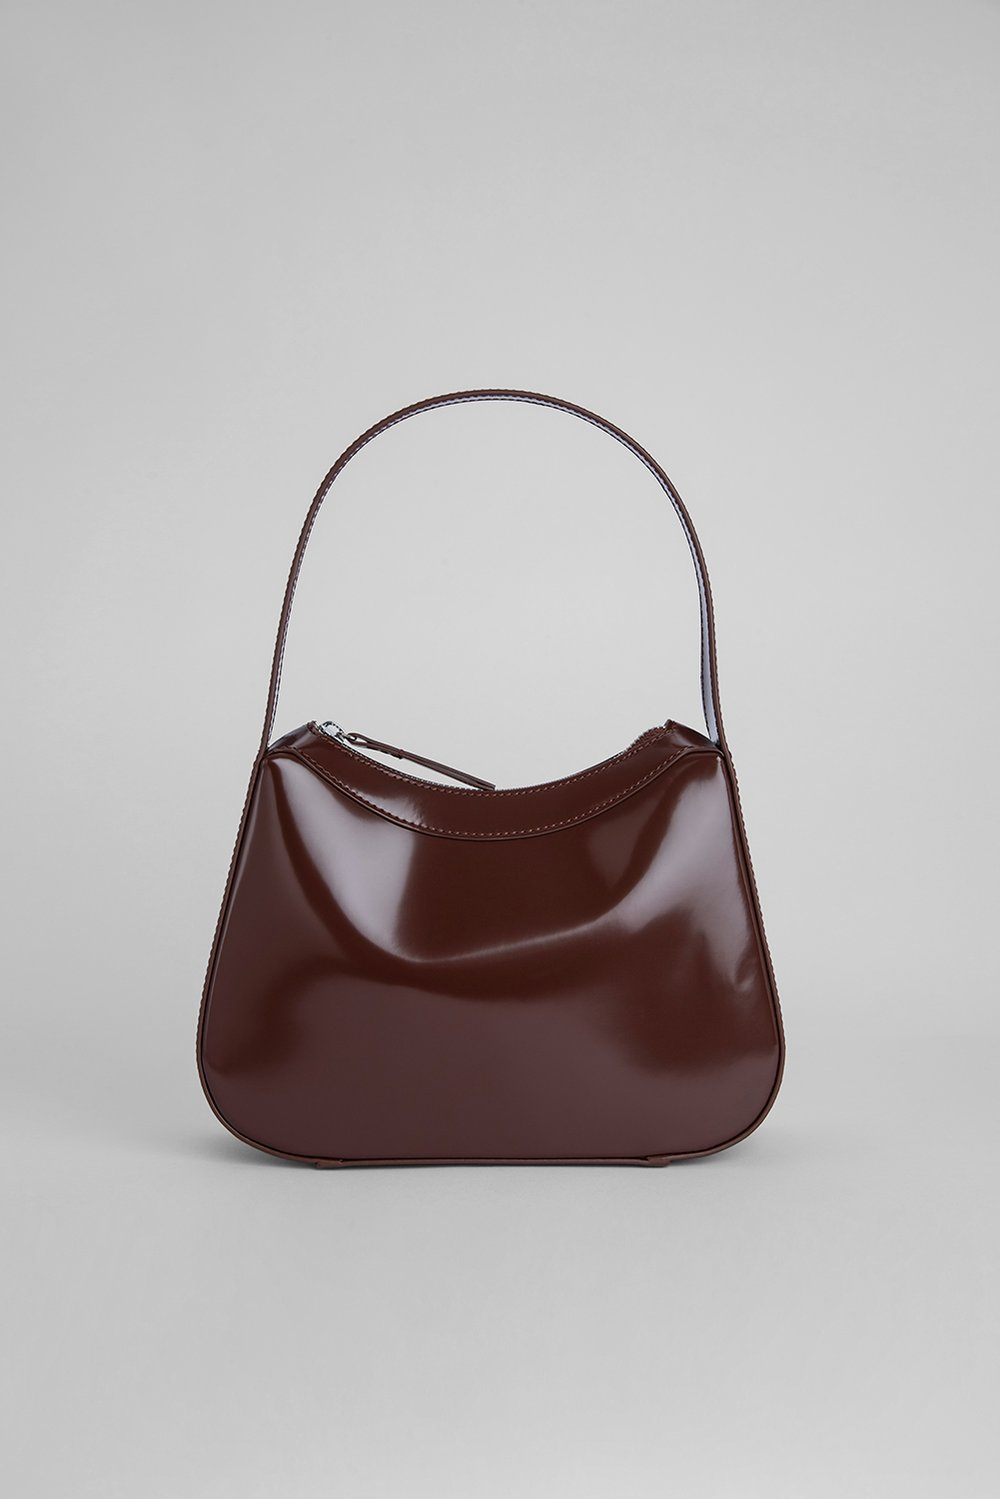 KIKI DARK BROWN SEMI PATENT LEATHER by BY FAR, available on byfar.com for $660 Kendall Jenner Bags Exact Product